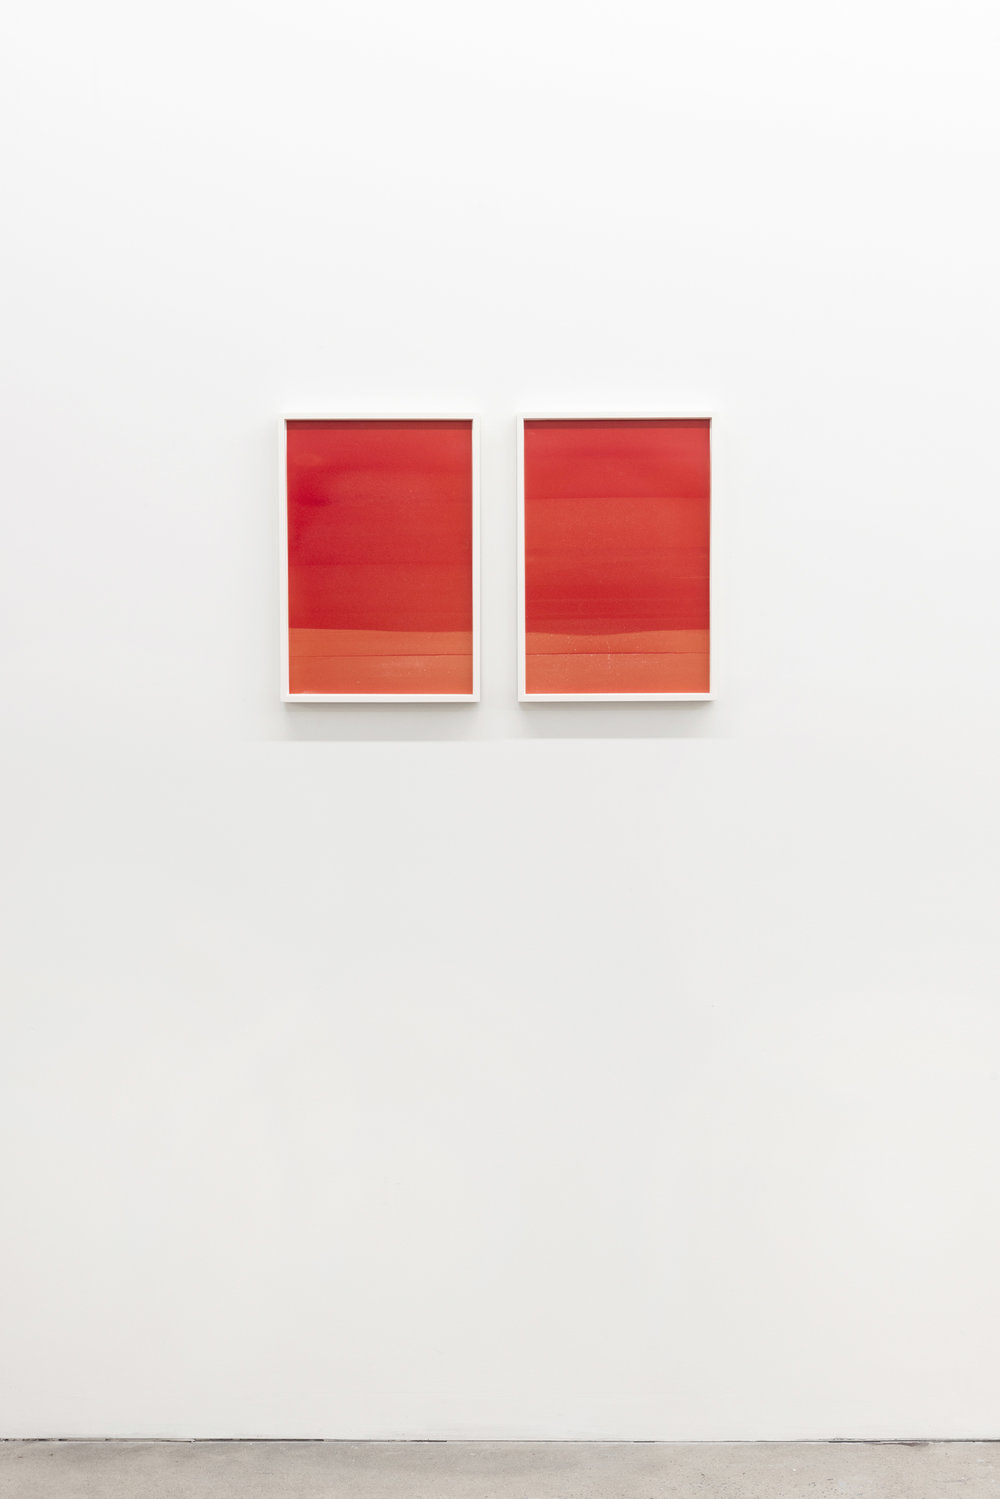 Red (landscape #1 and #2),  2014, Oil on Mylar, 18 x 13 inches